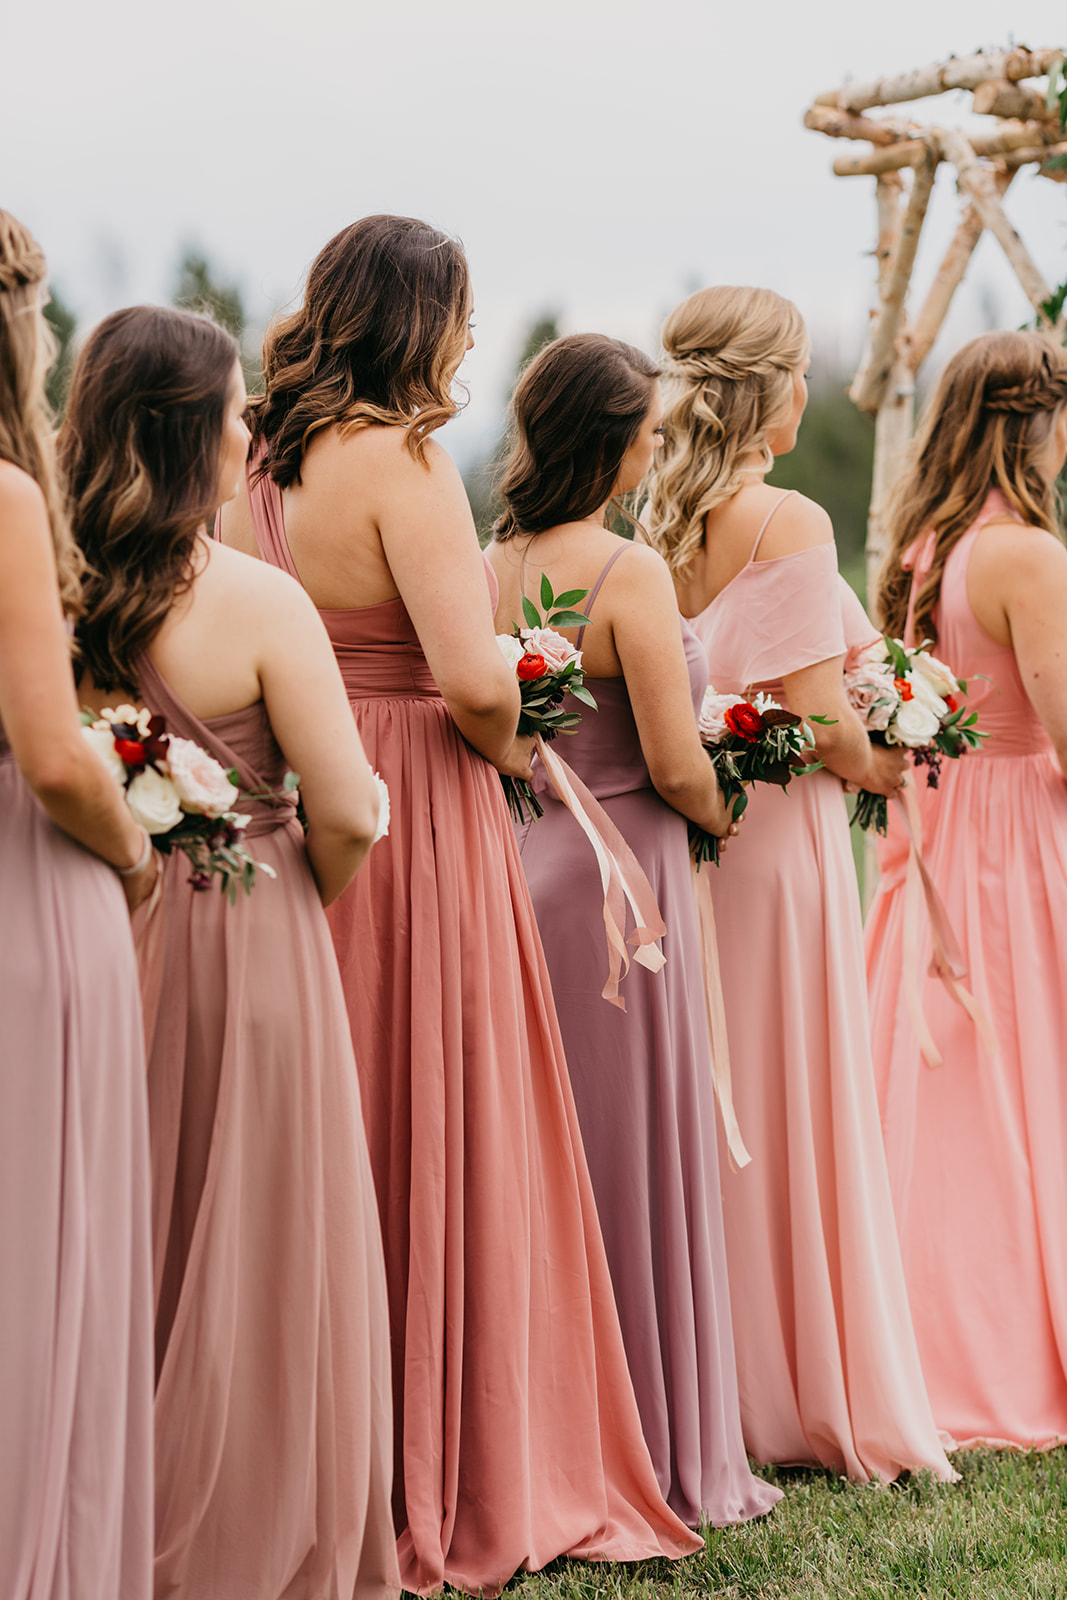 Bridesmaids watching a wedding ceremony